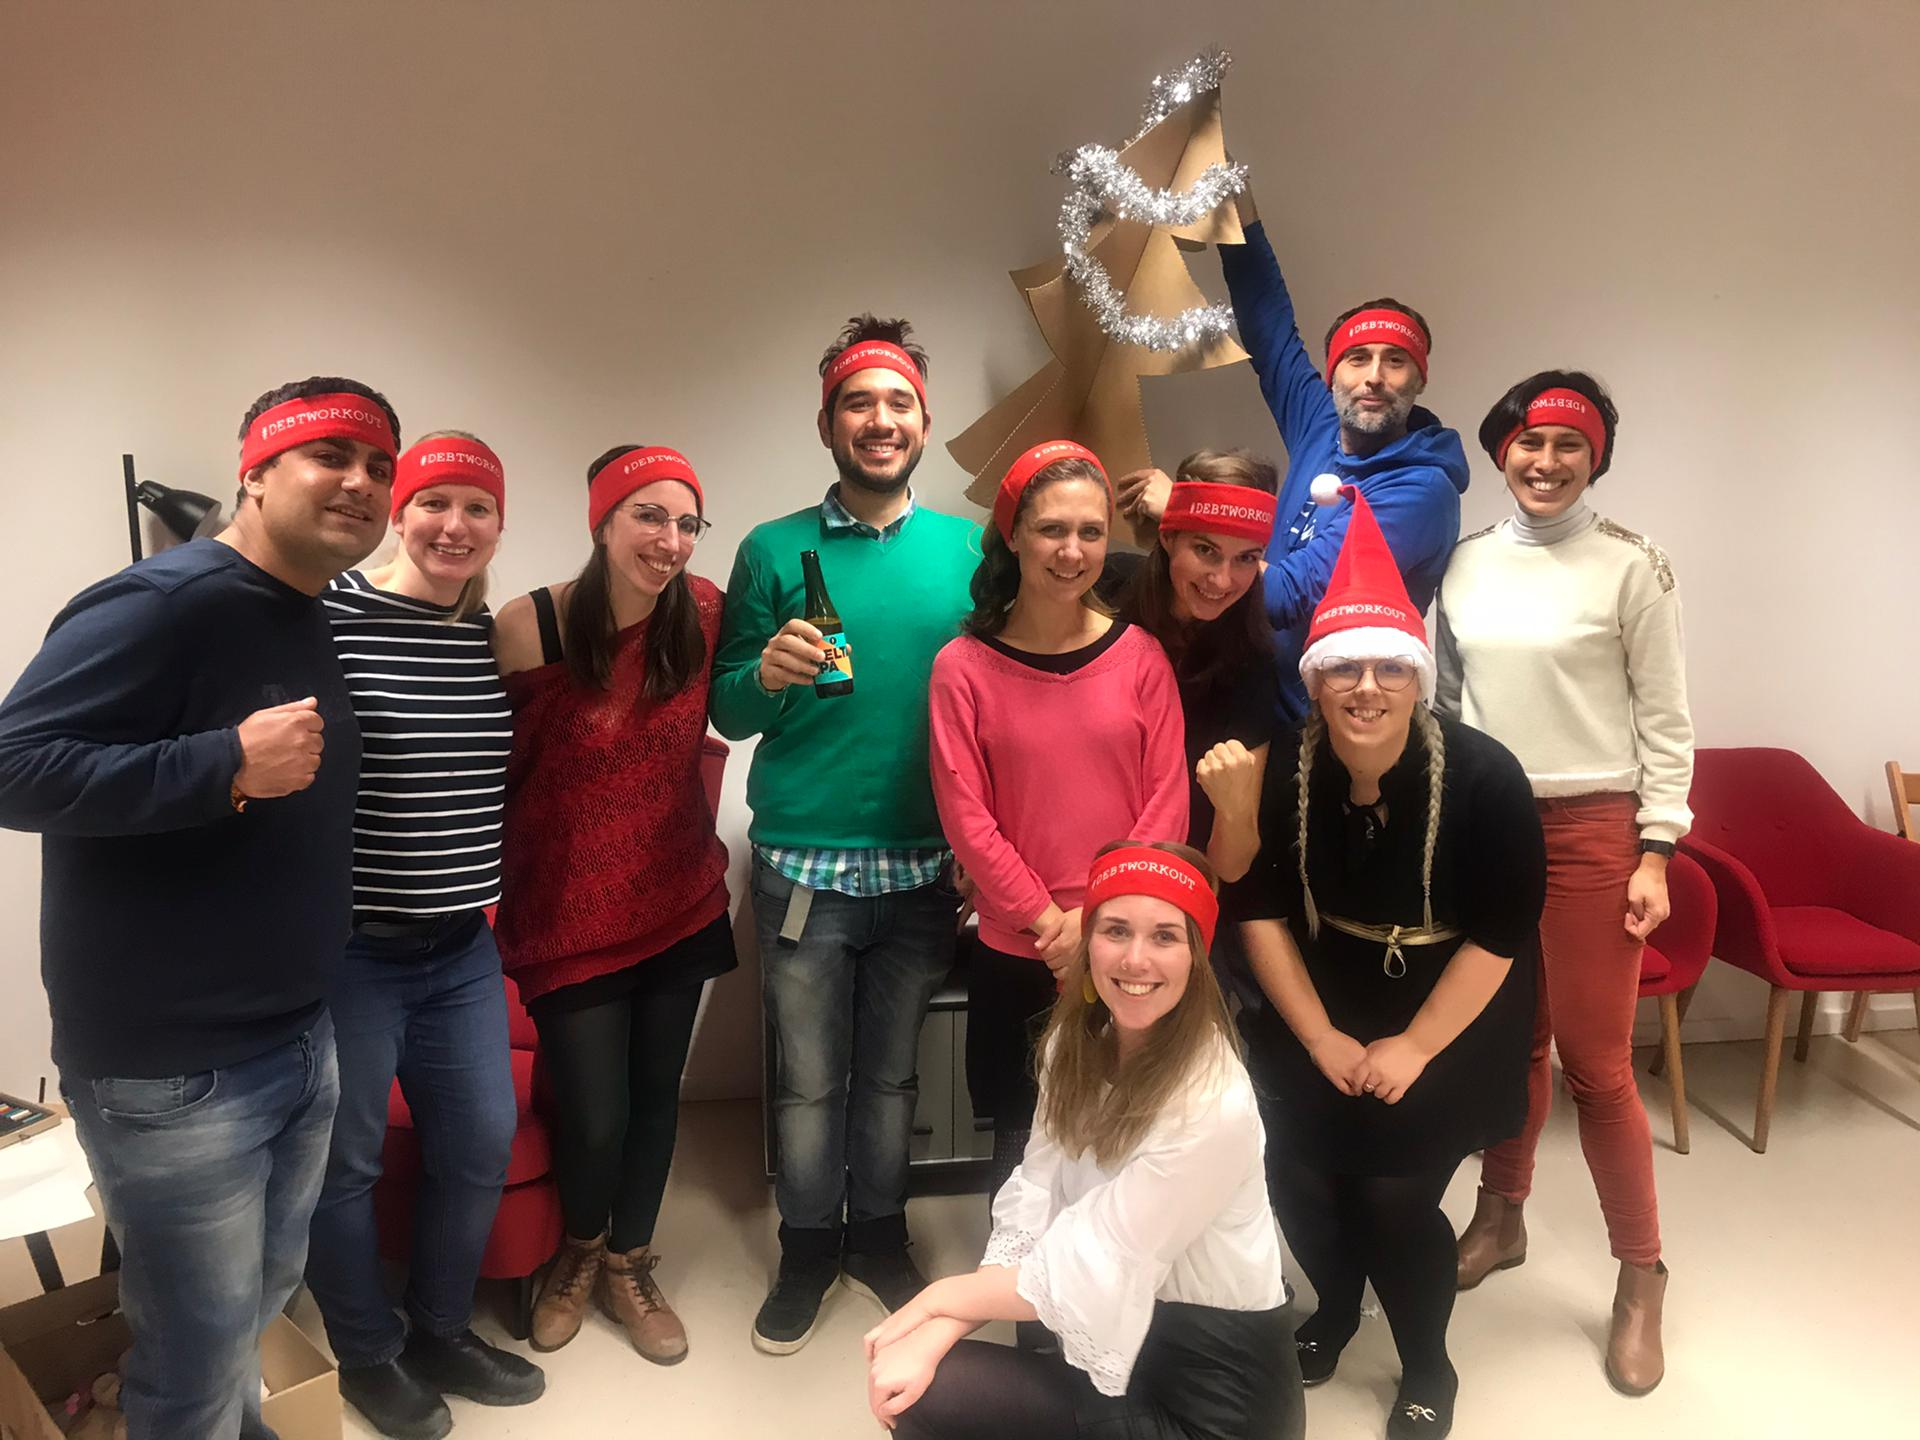 The Eurodad team at Christmas wearing Debt Workout headbands and holding up a cardboard christmas tree decorated in gold tinsel